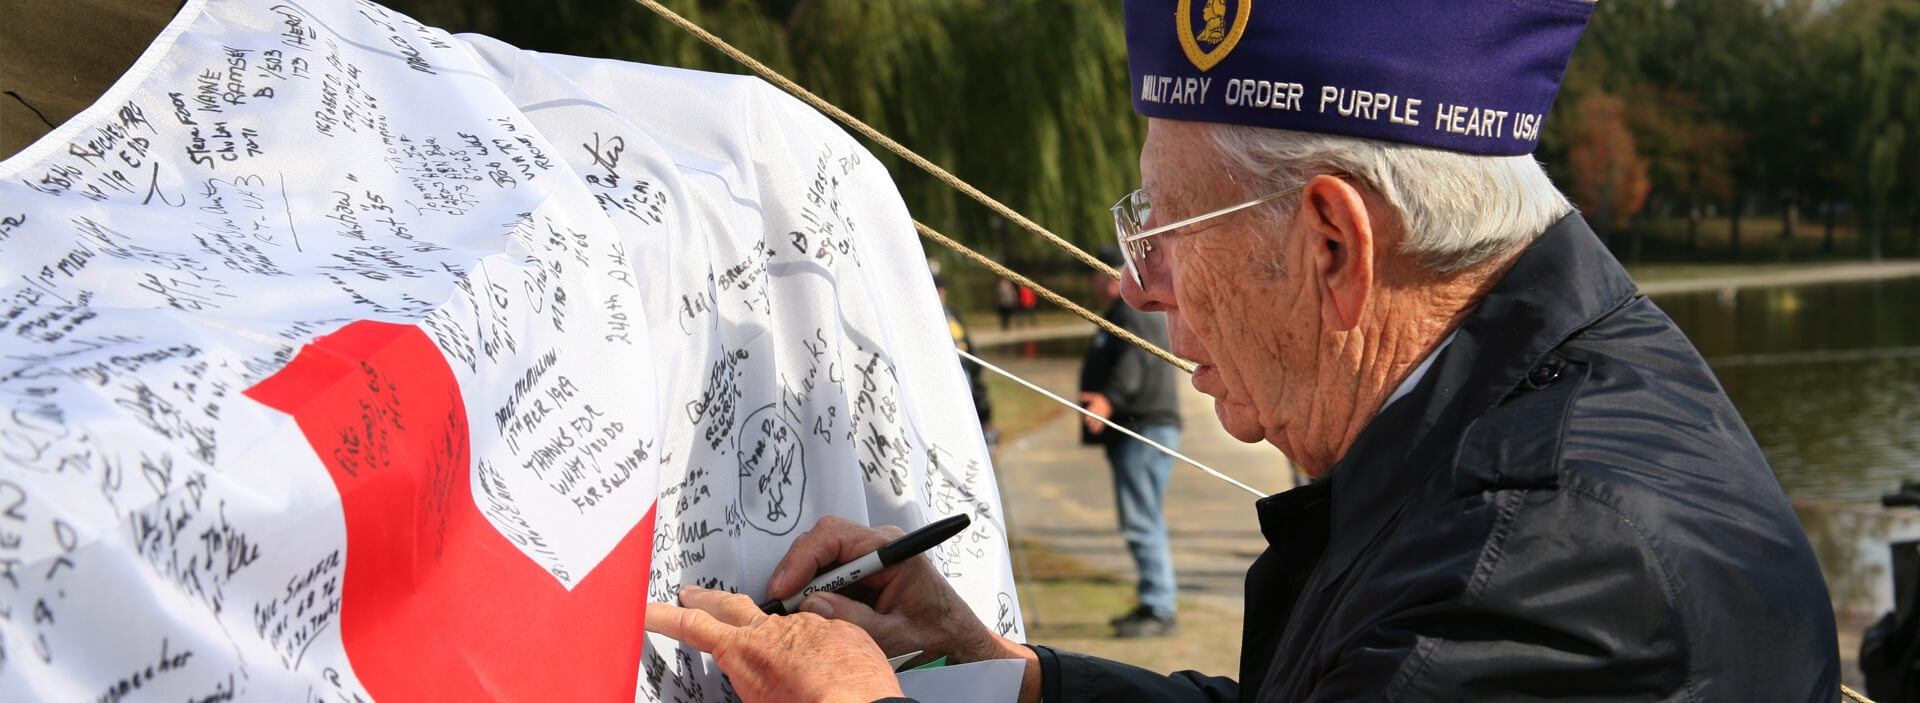 Military veteran signing American Red Cross flag